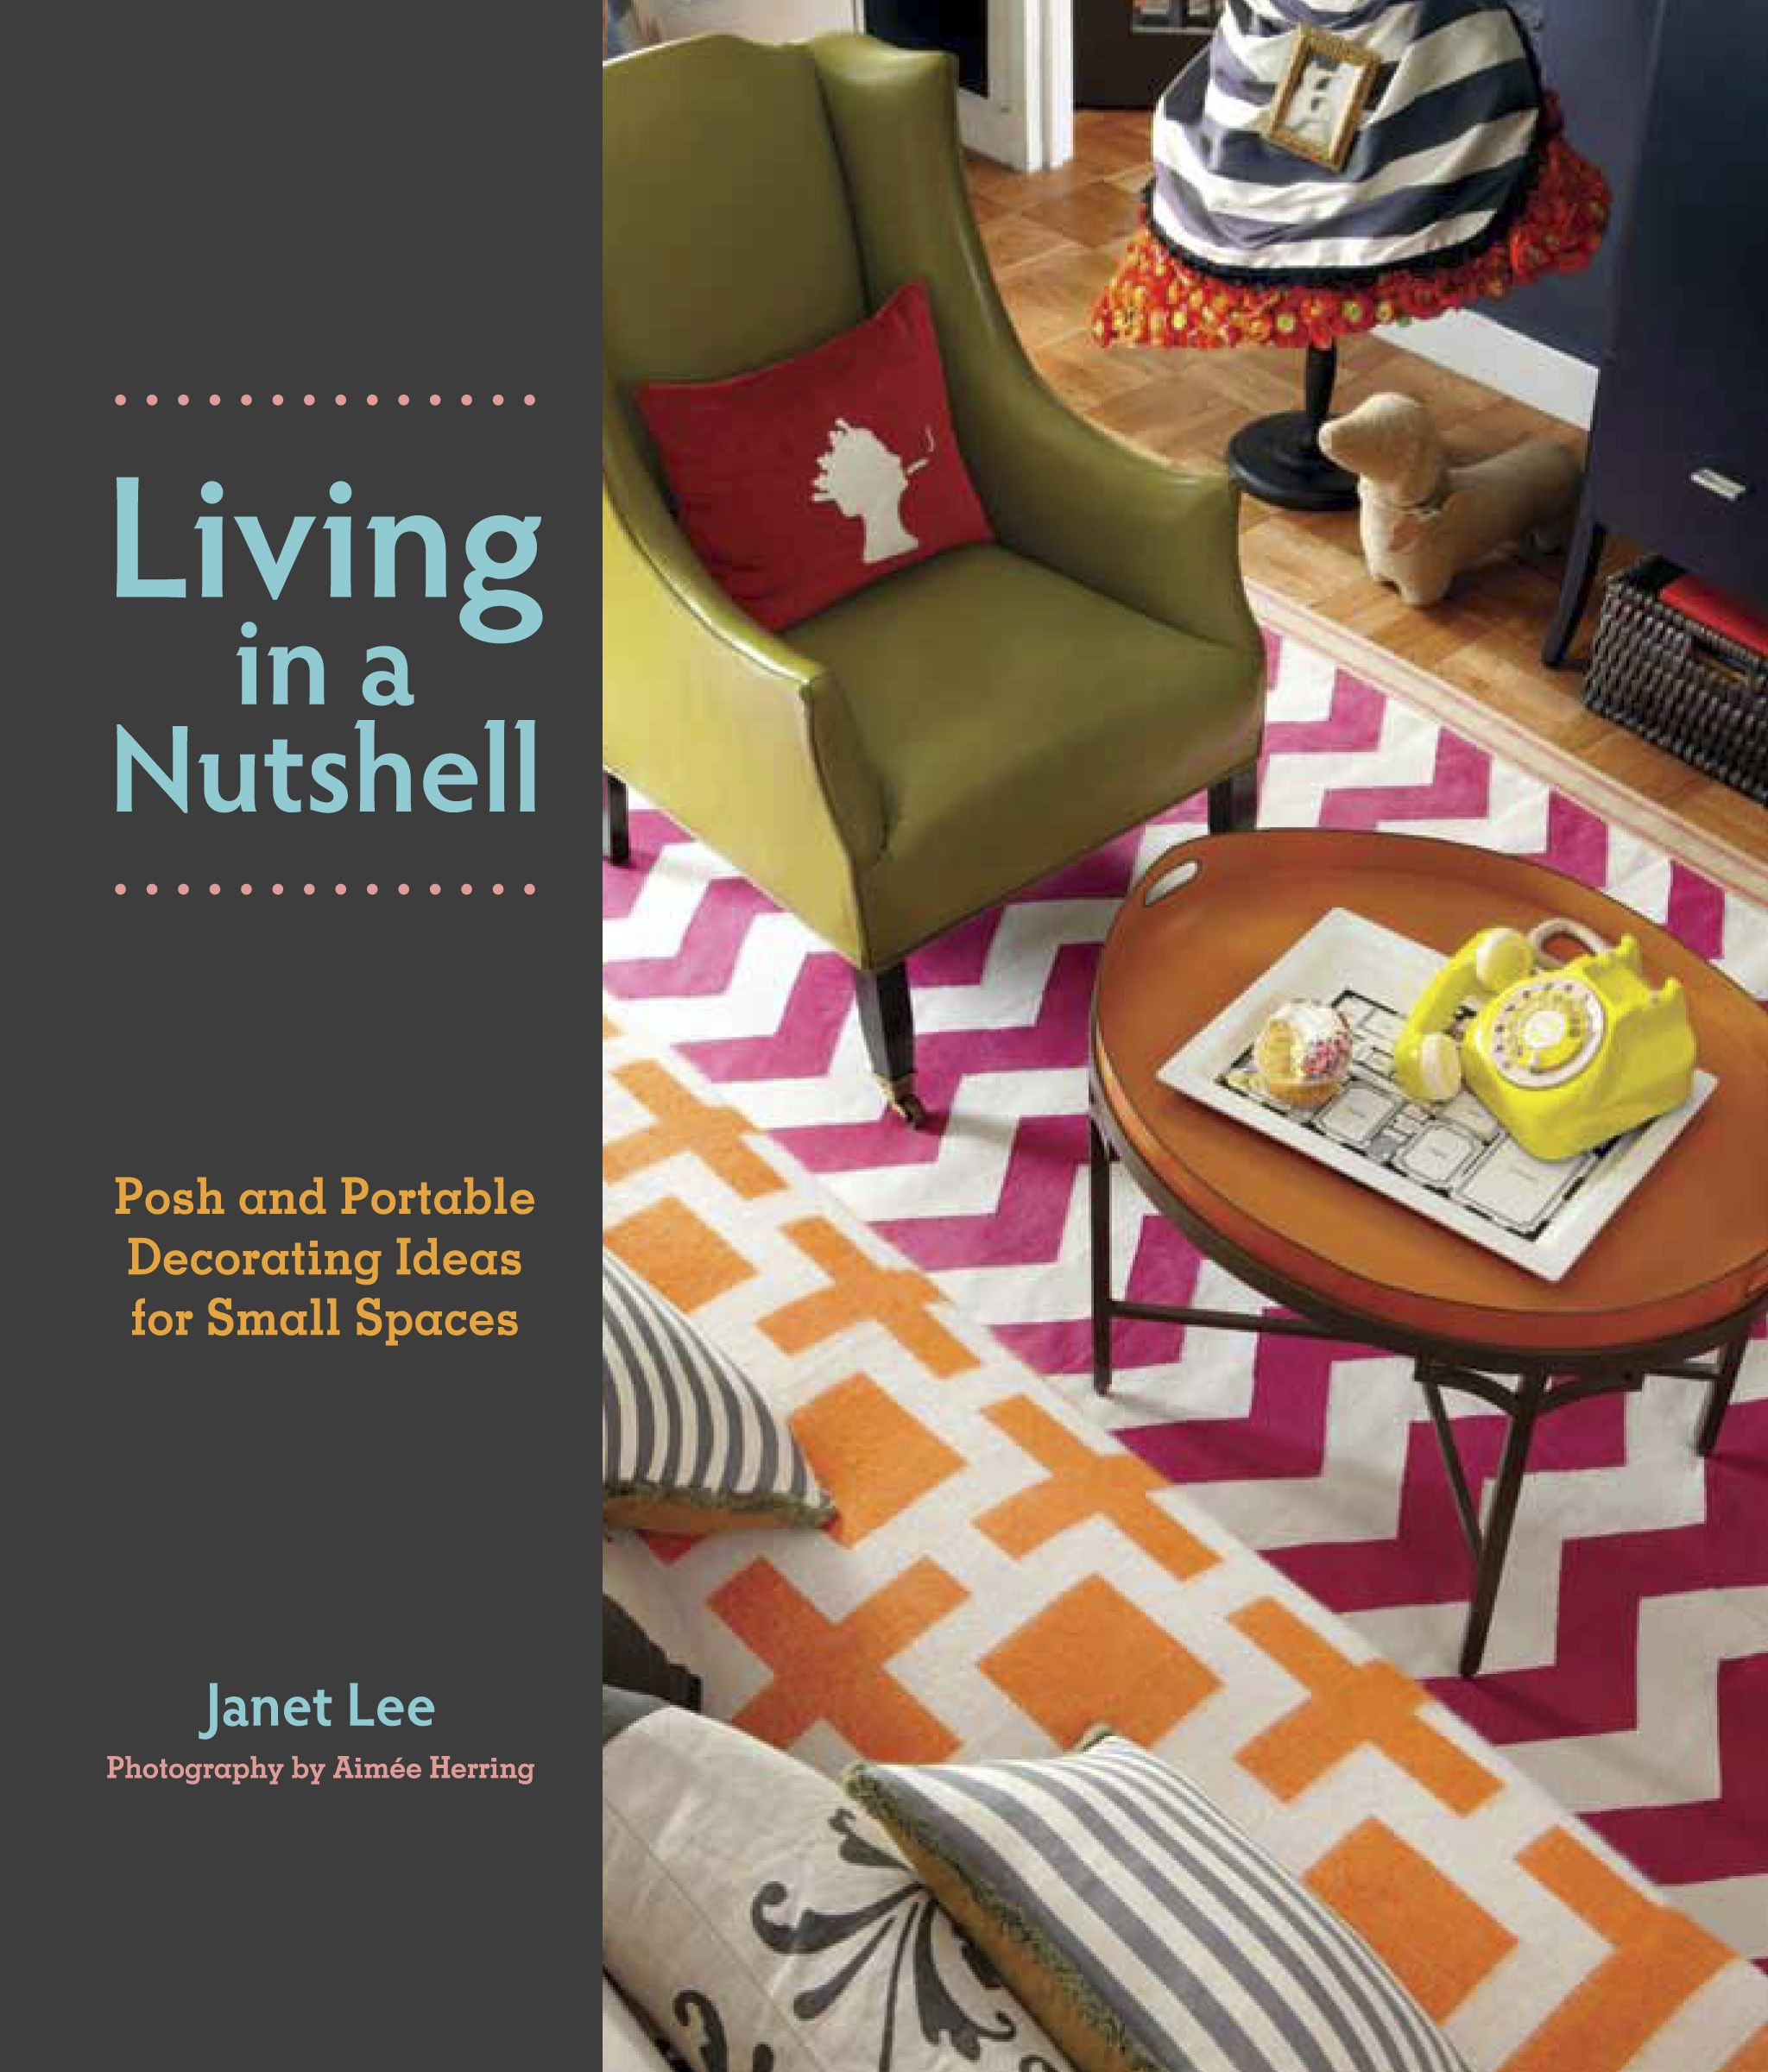 Janet Lee Shares Her Tips and Tricks For Living Fabulously in a Tiny Space